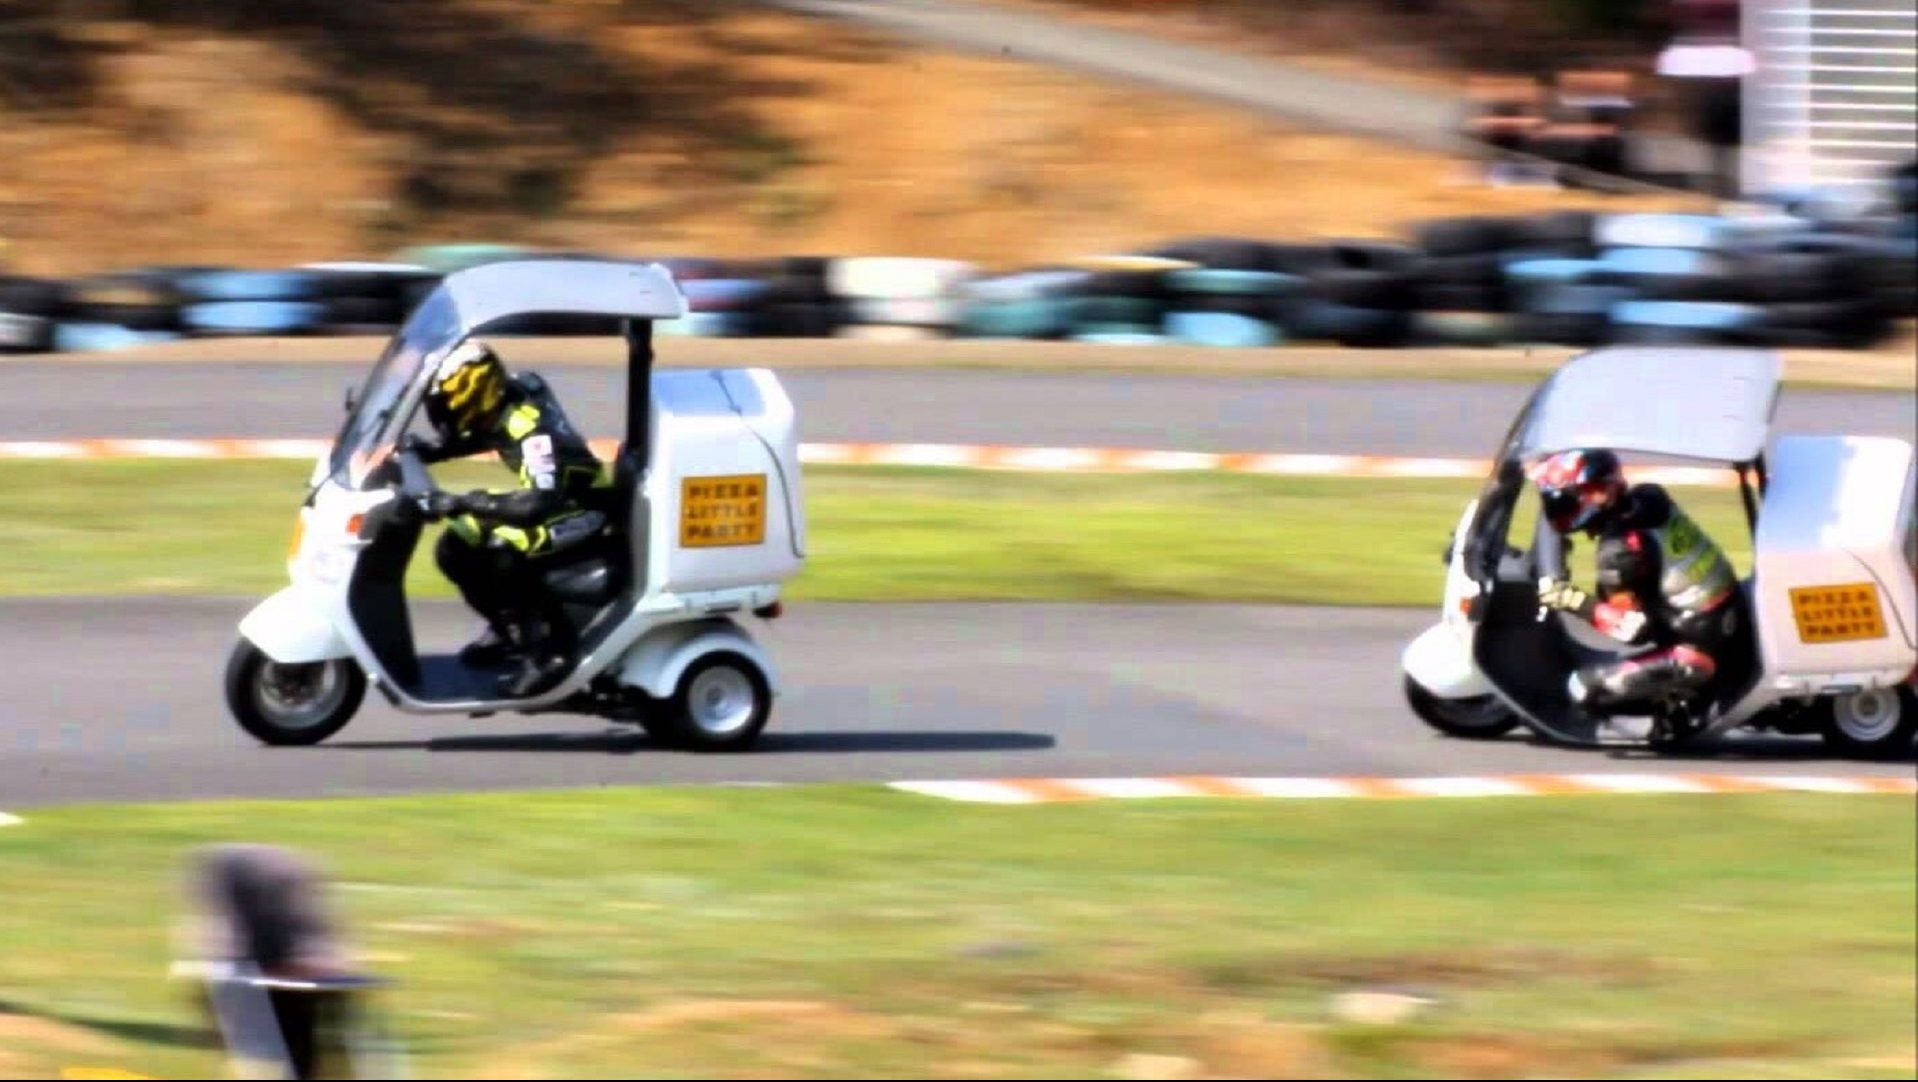 Japanese Pizza Delivery Scooter Racing Is My New Favorite Motorsport